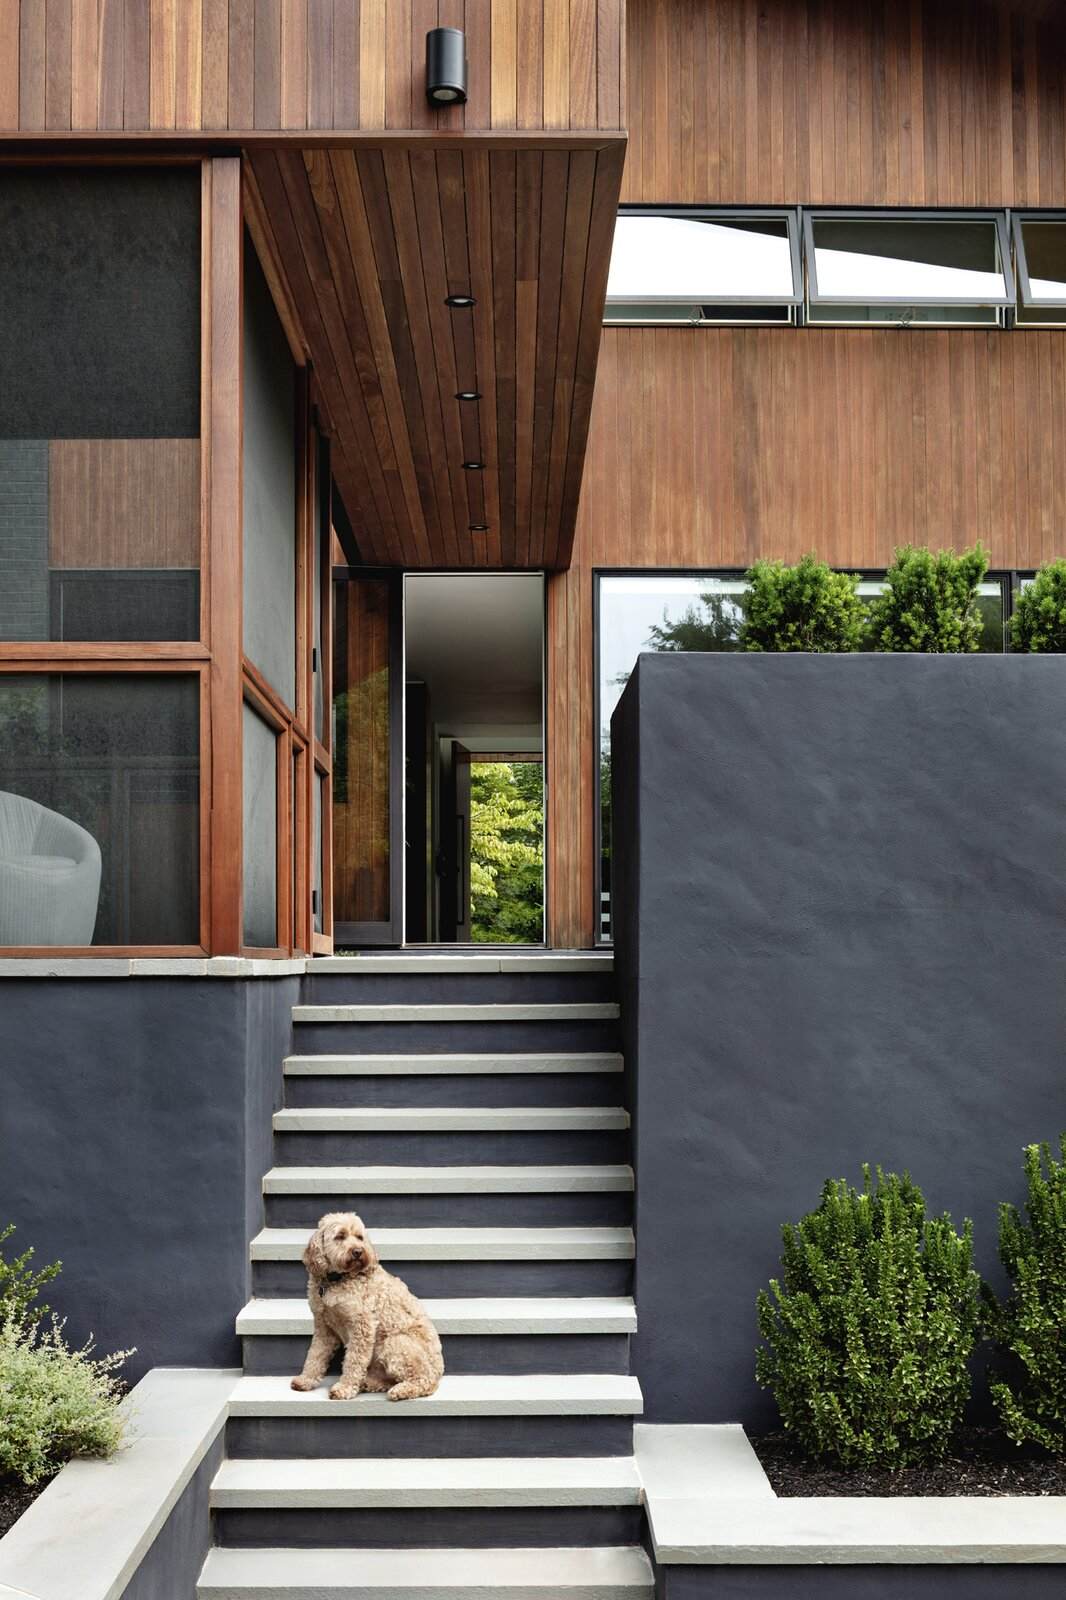 Stephenson House by Assembledge+ and Fowlkes Studio rear stair